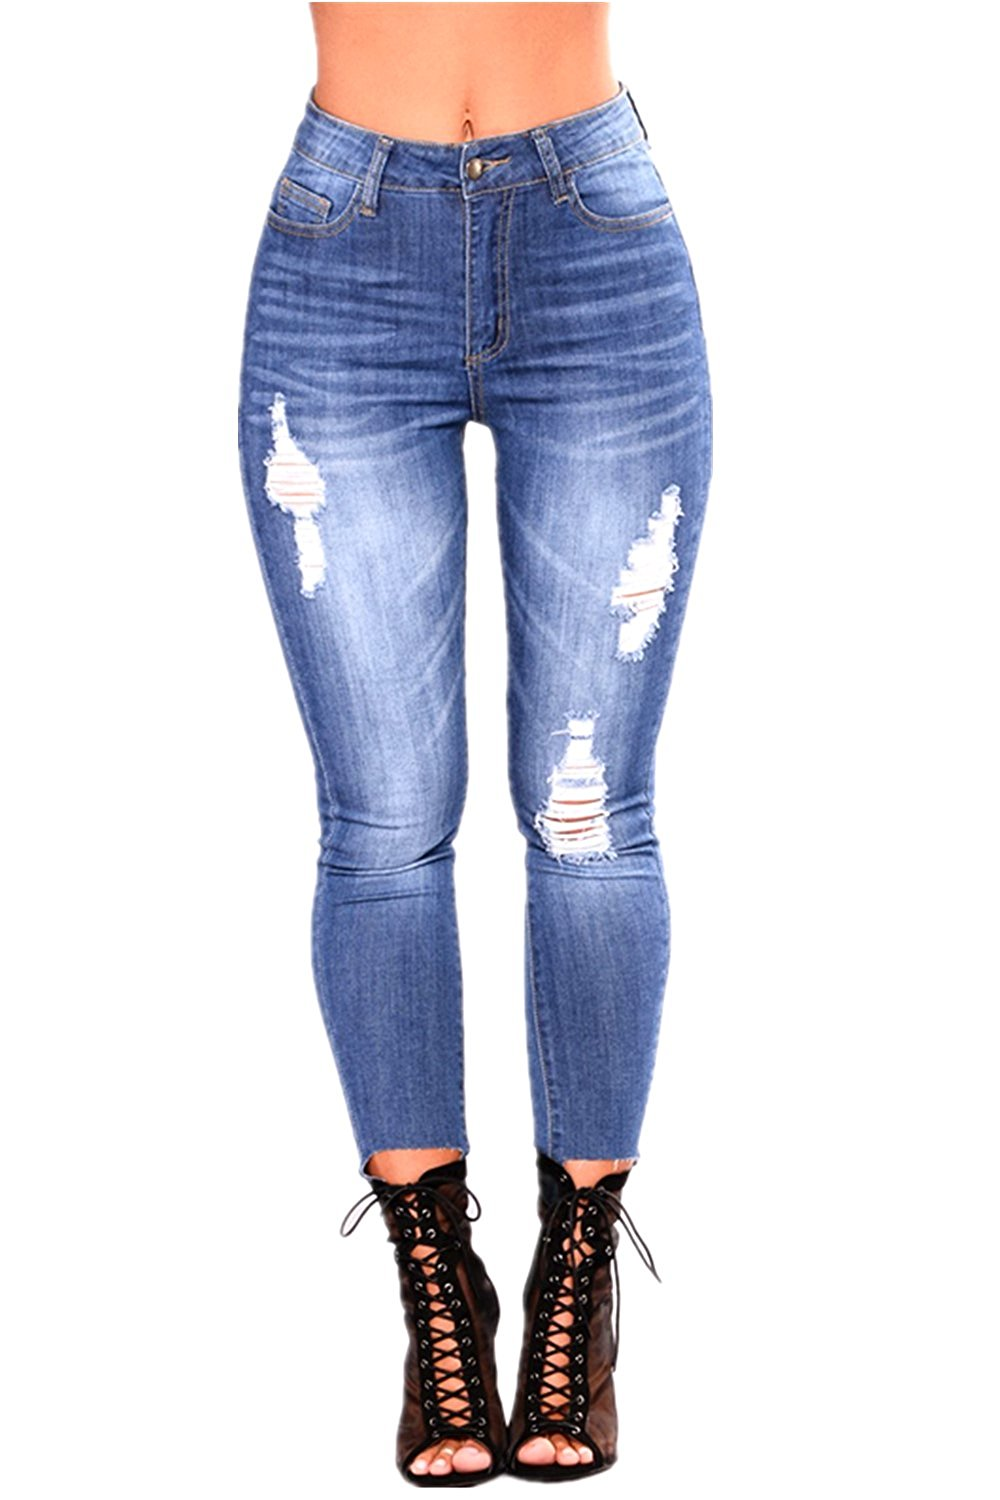 6c79a8bc6dfb43 Get Quotations · L.B FASHION Womens High Rise-Waisted Jeans Juniors  Distressed Ripped Stretch Skinny Denim Bootcut Bell